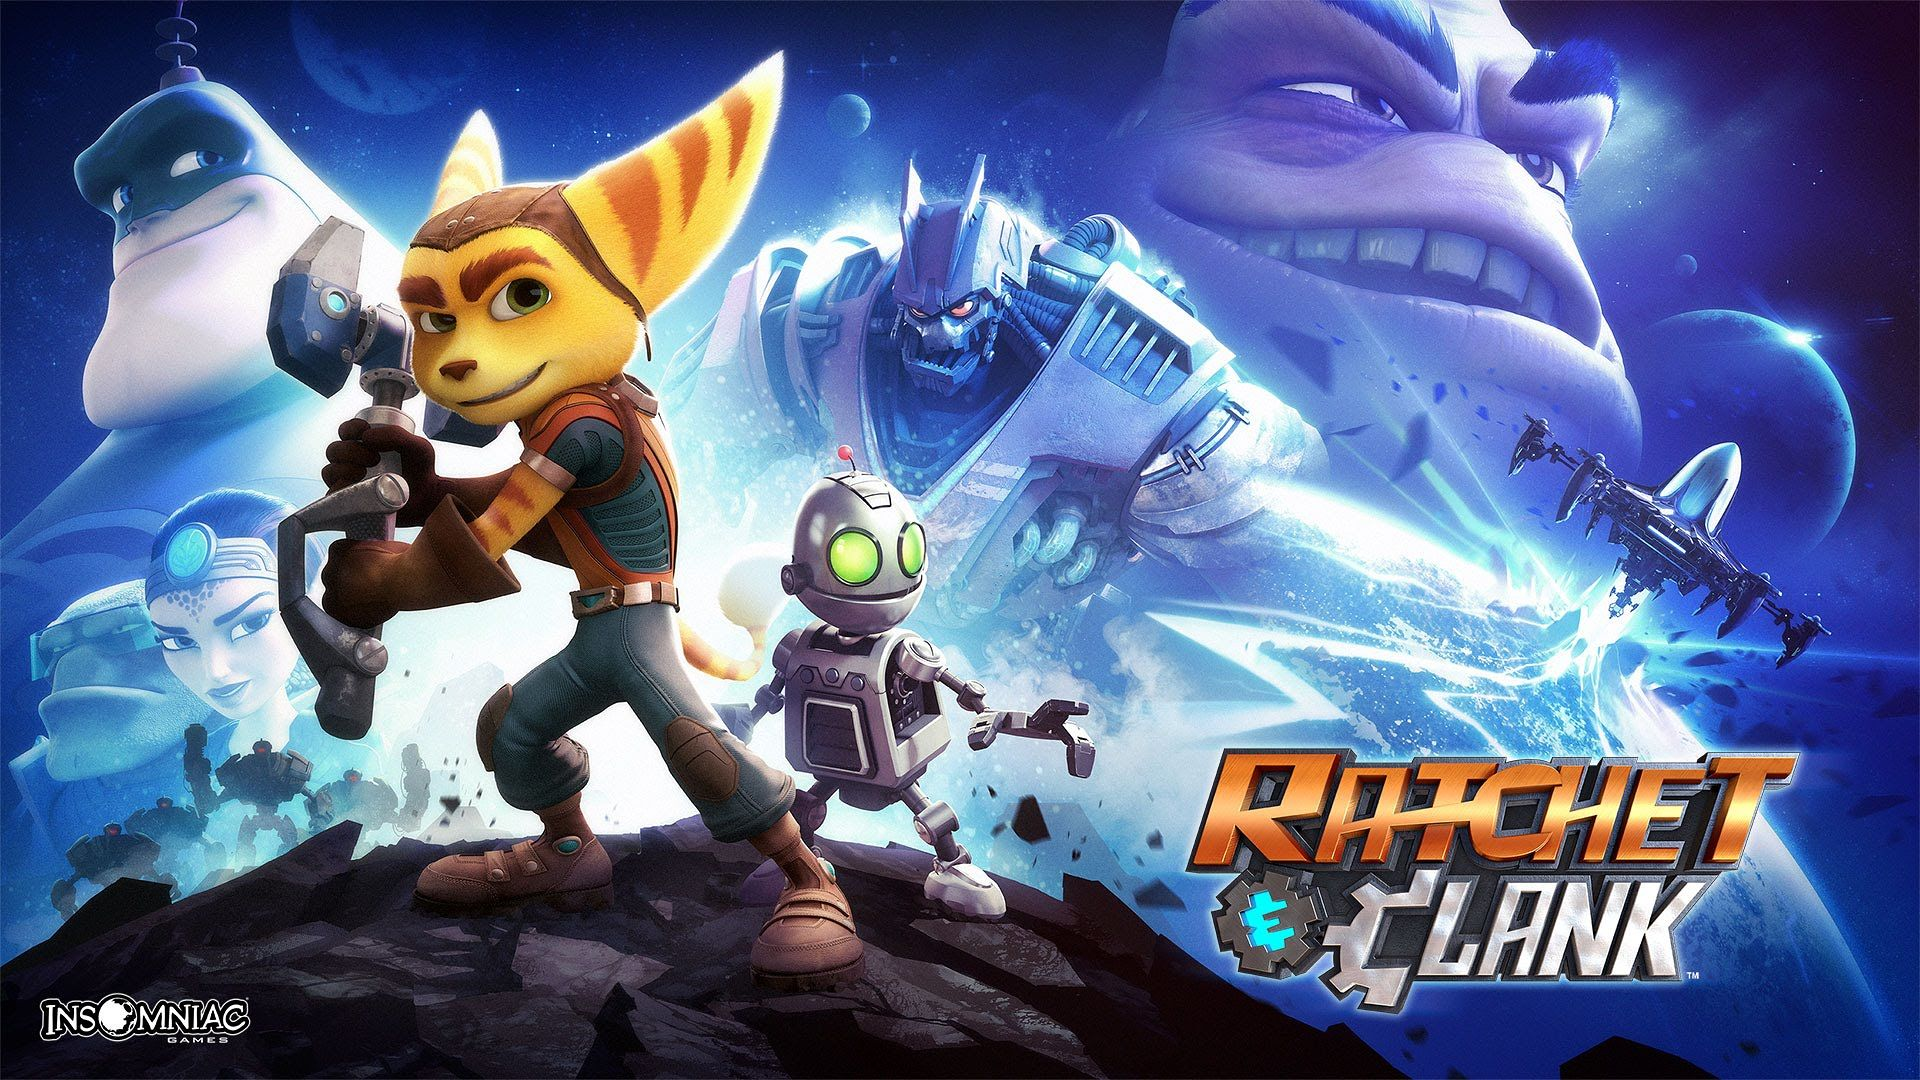 ratchet-clank-2016-review-939366